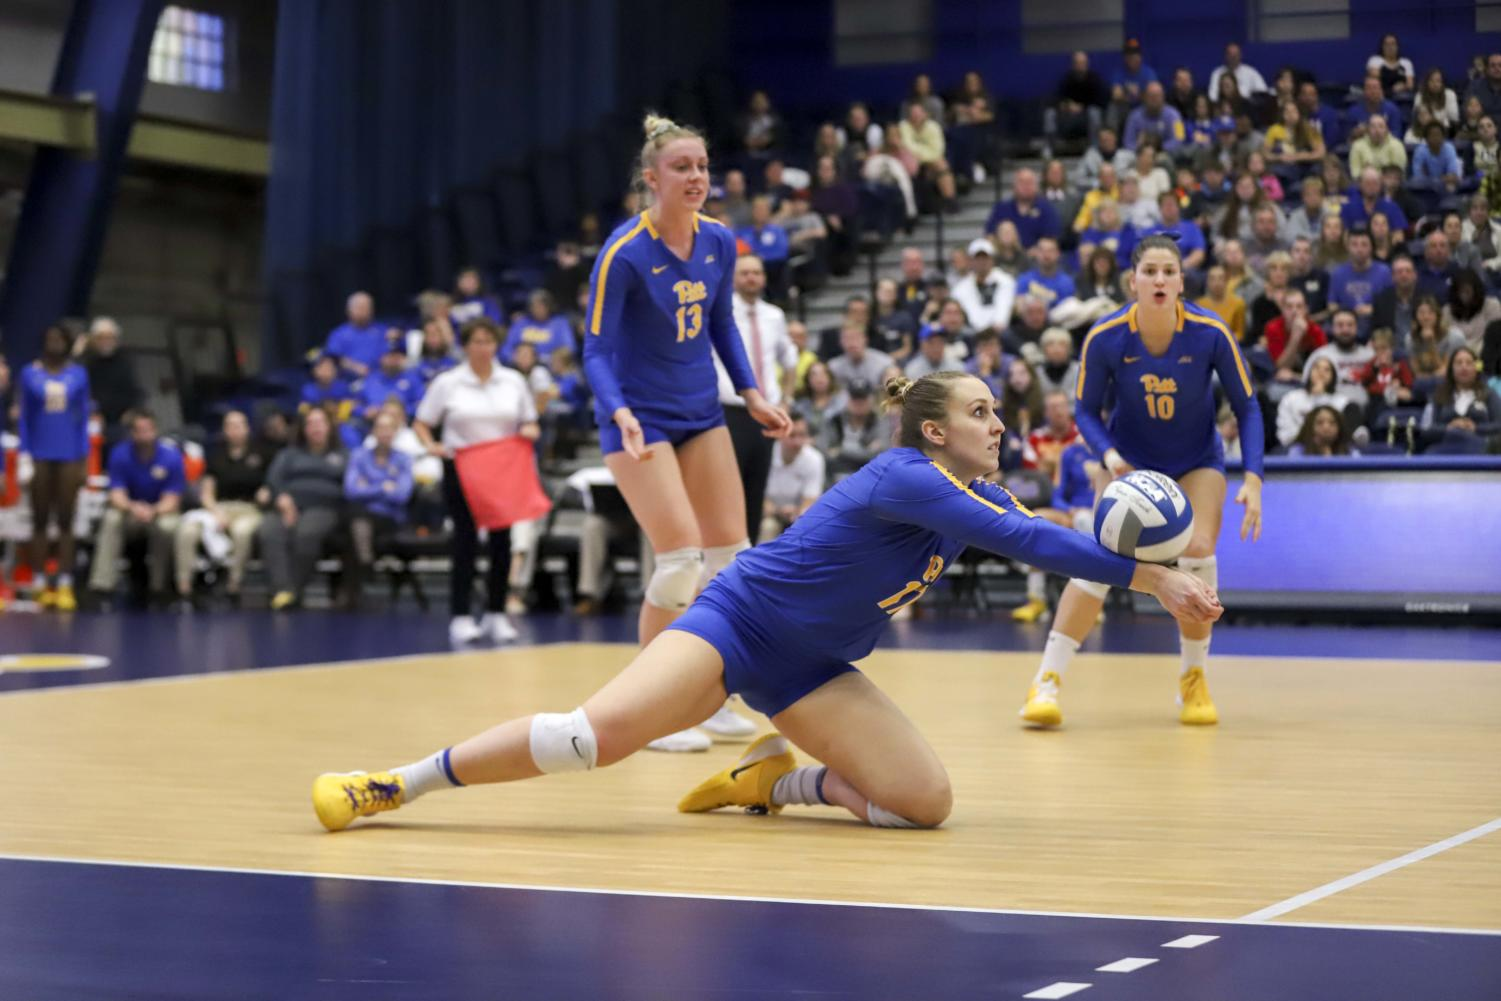 Pitt volleyball will host Howard on Dec. 6 in the first round of the NCAA tournament.